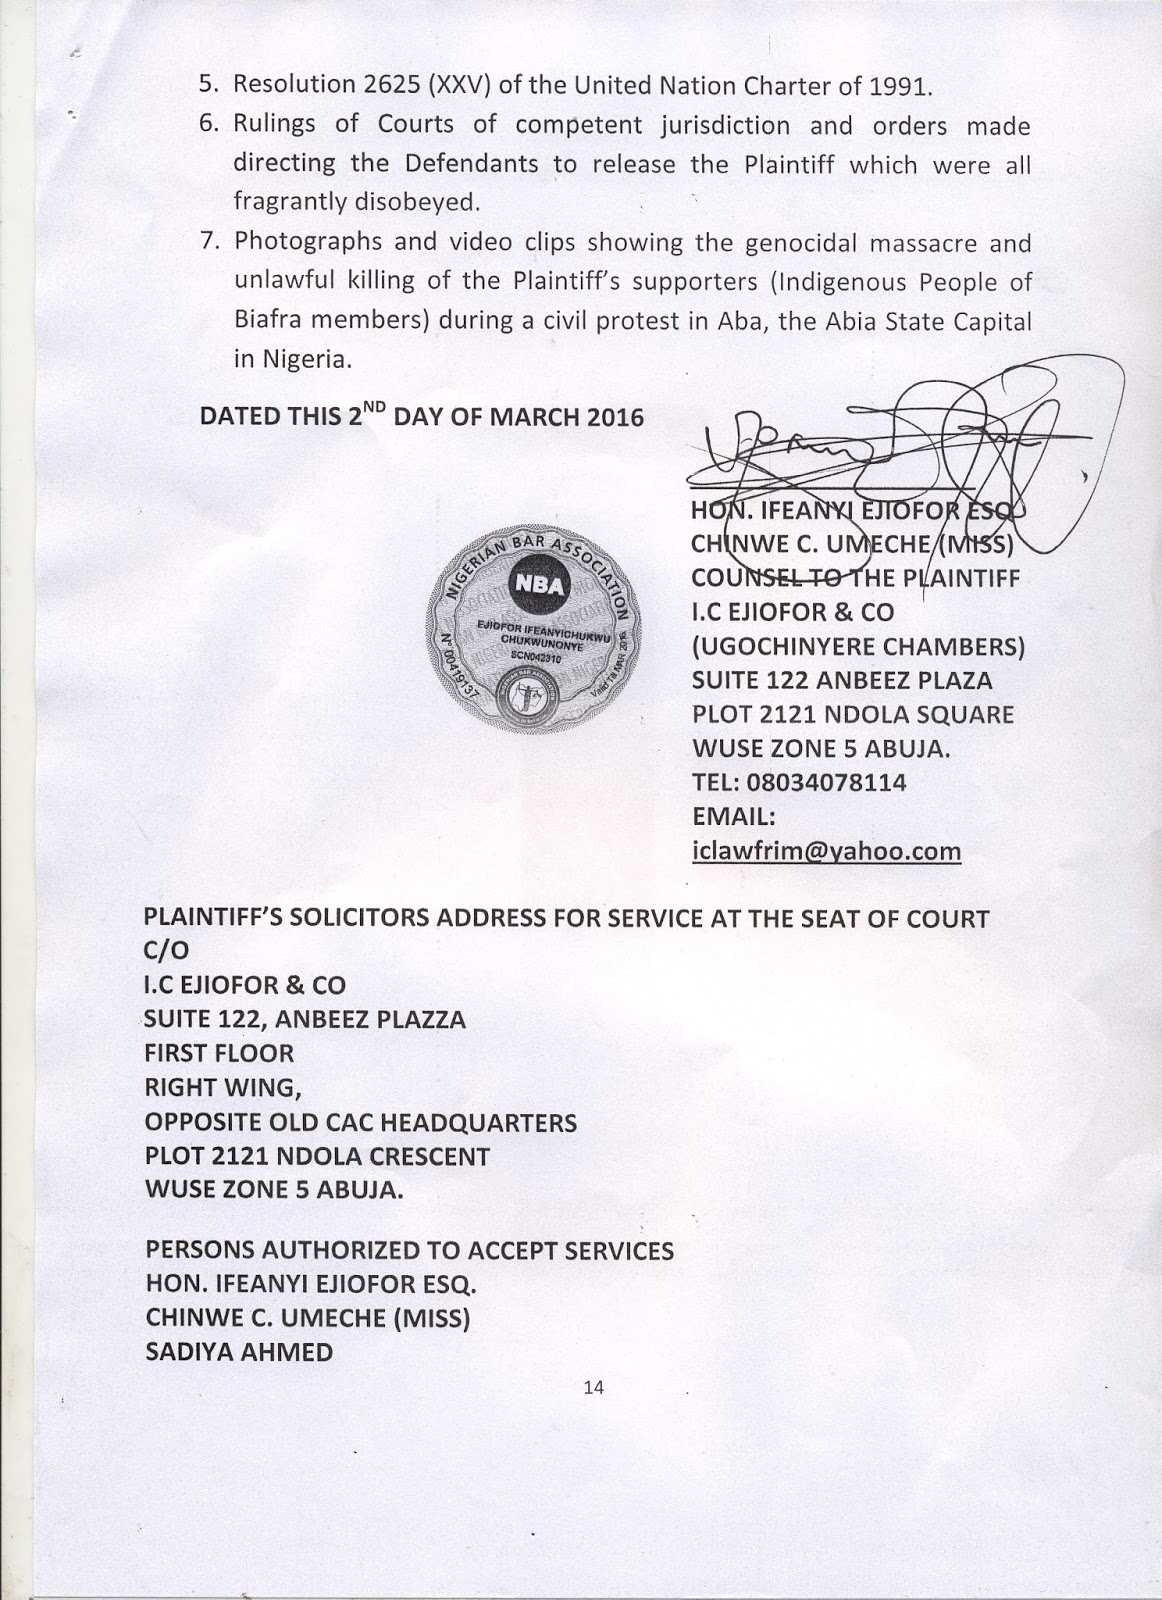 Nnamdi Kanu Drags Nigeria To Ecowas Court, Demands $800 Million Over Illegal Detention 2